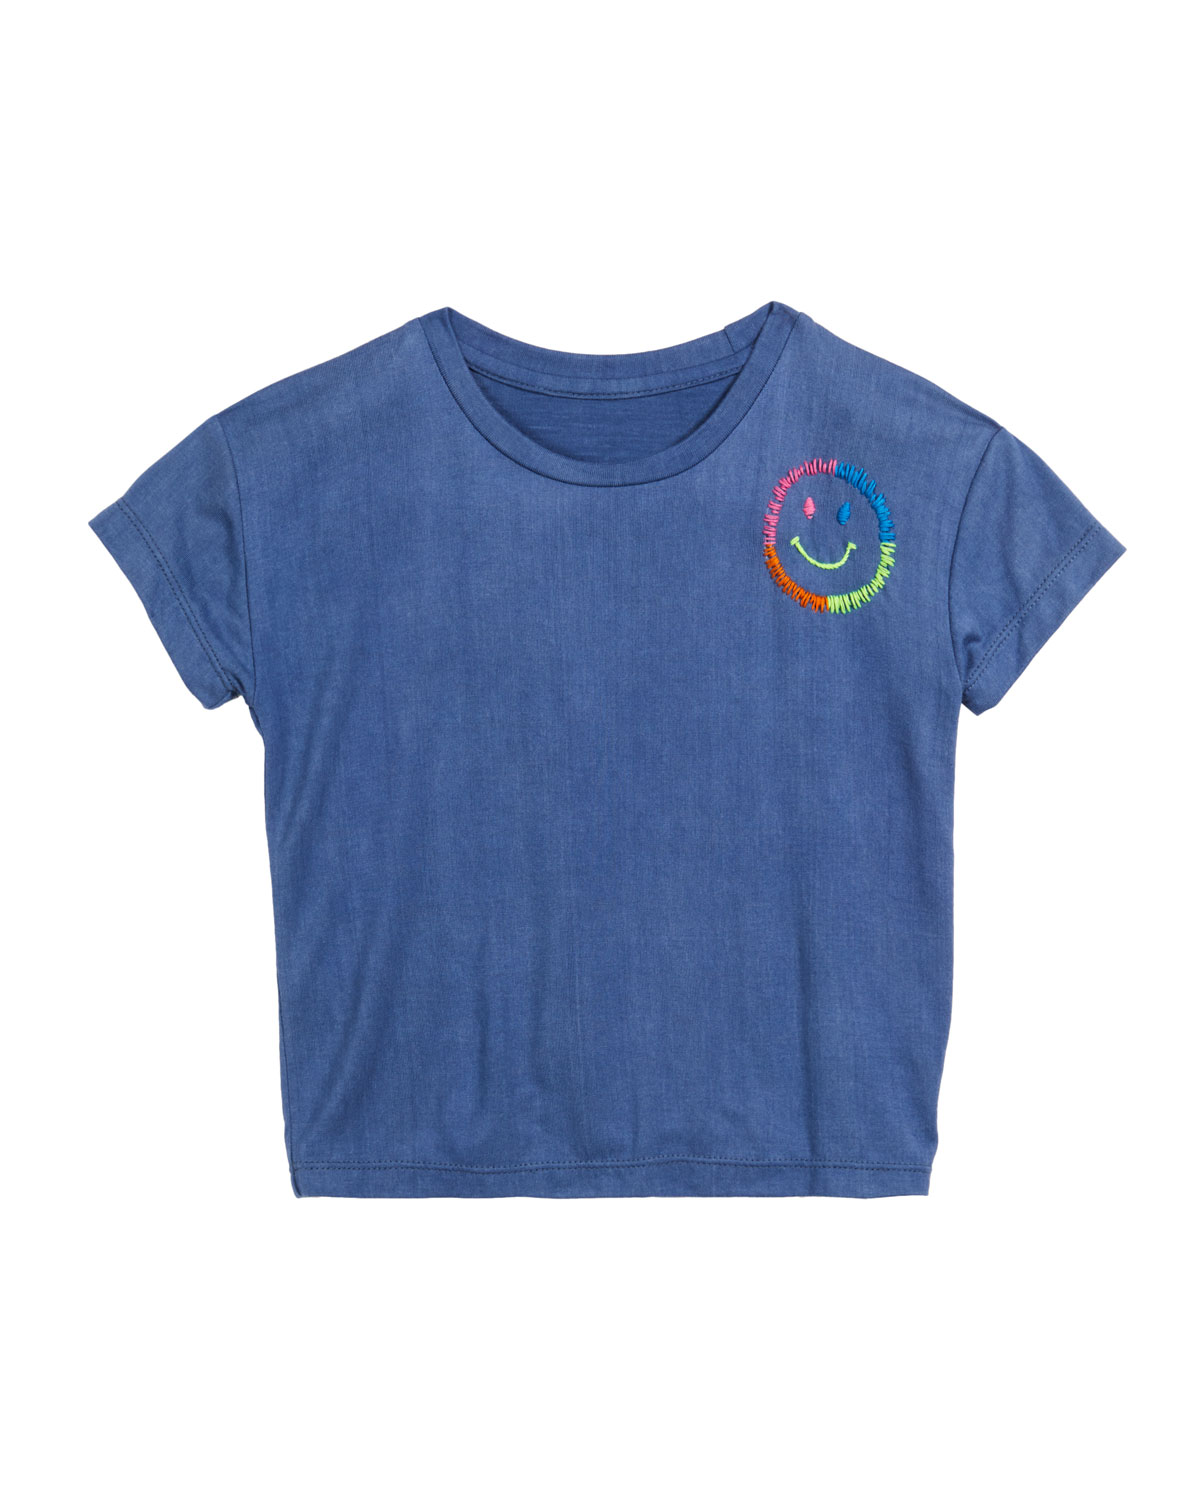 Girl's Embroidered Smiley Face T-Shirt, Size S-XL